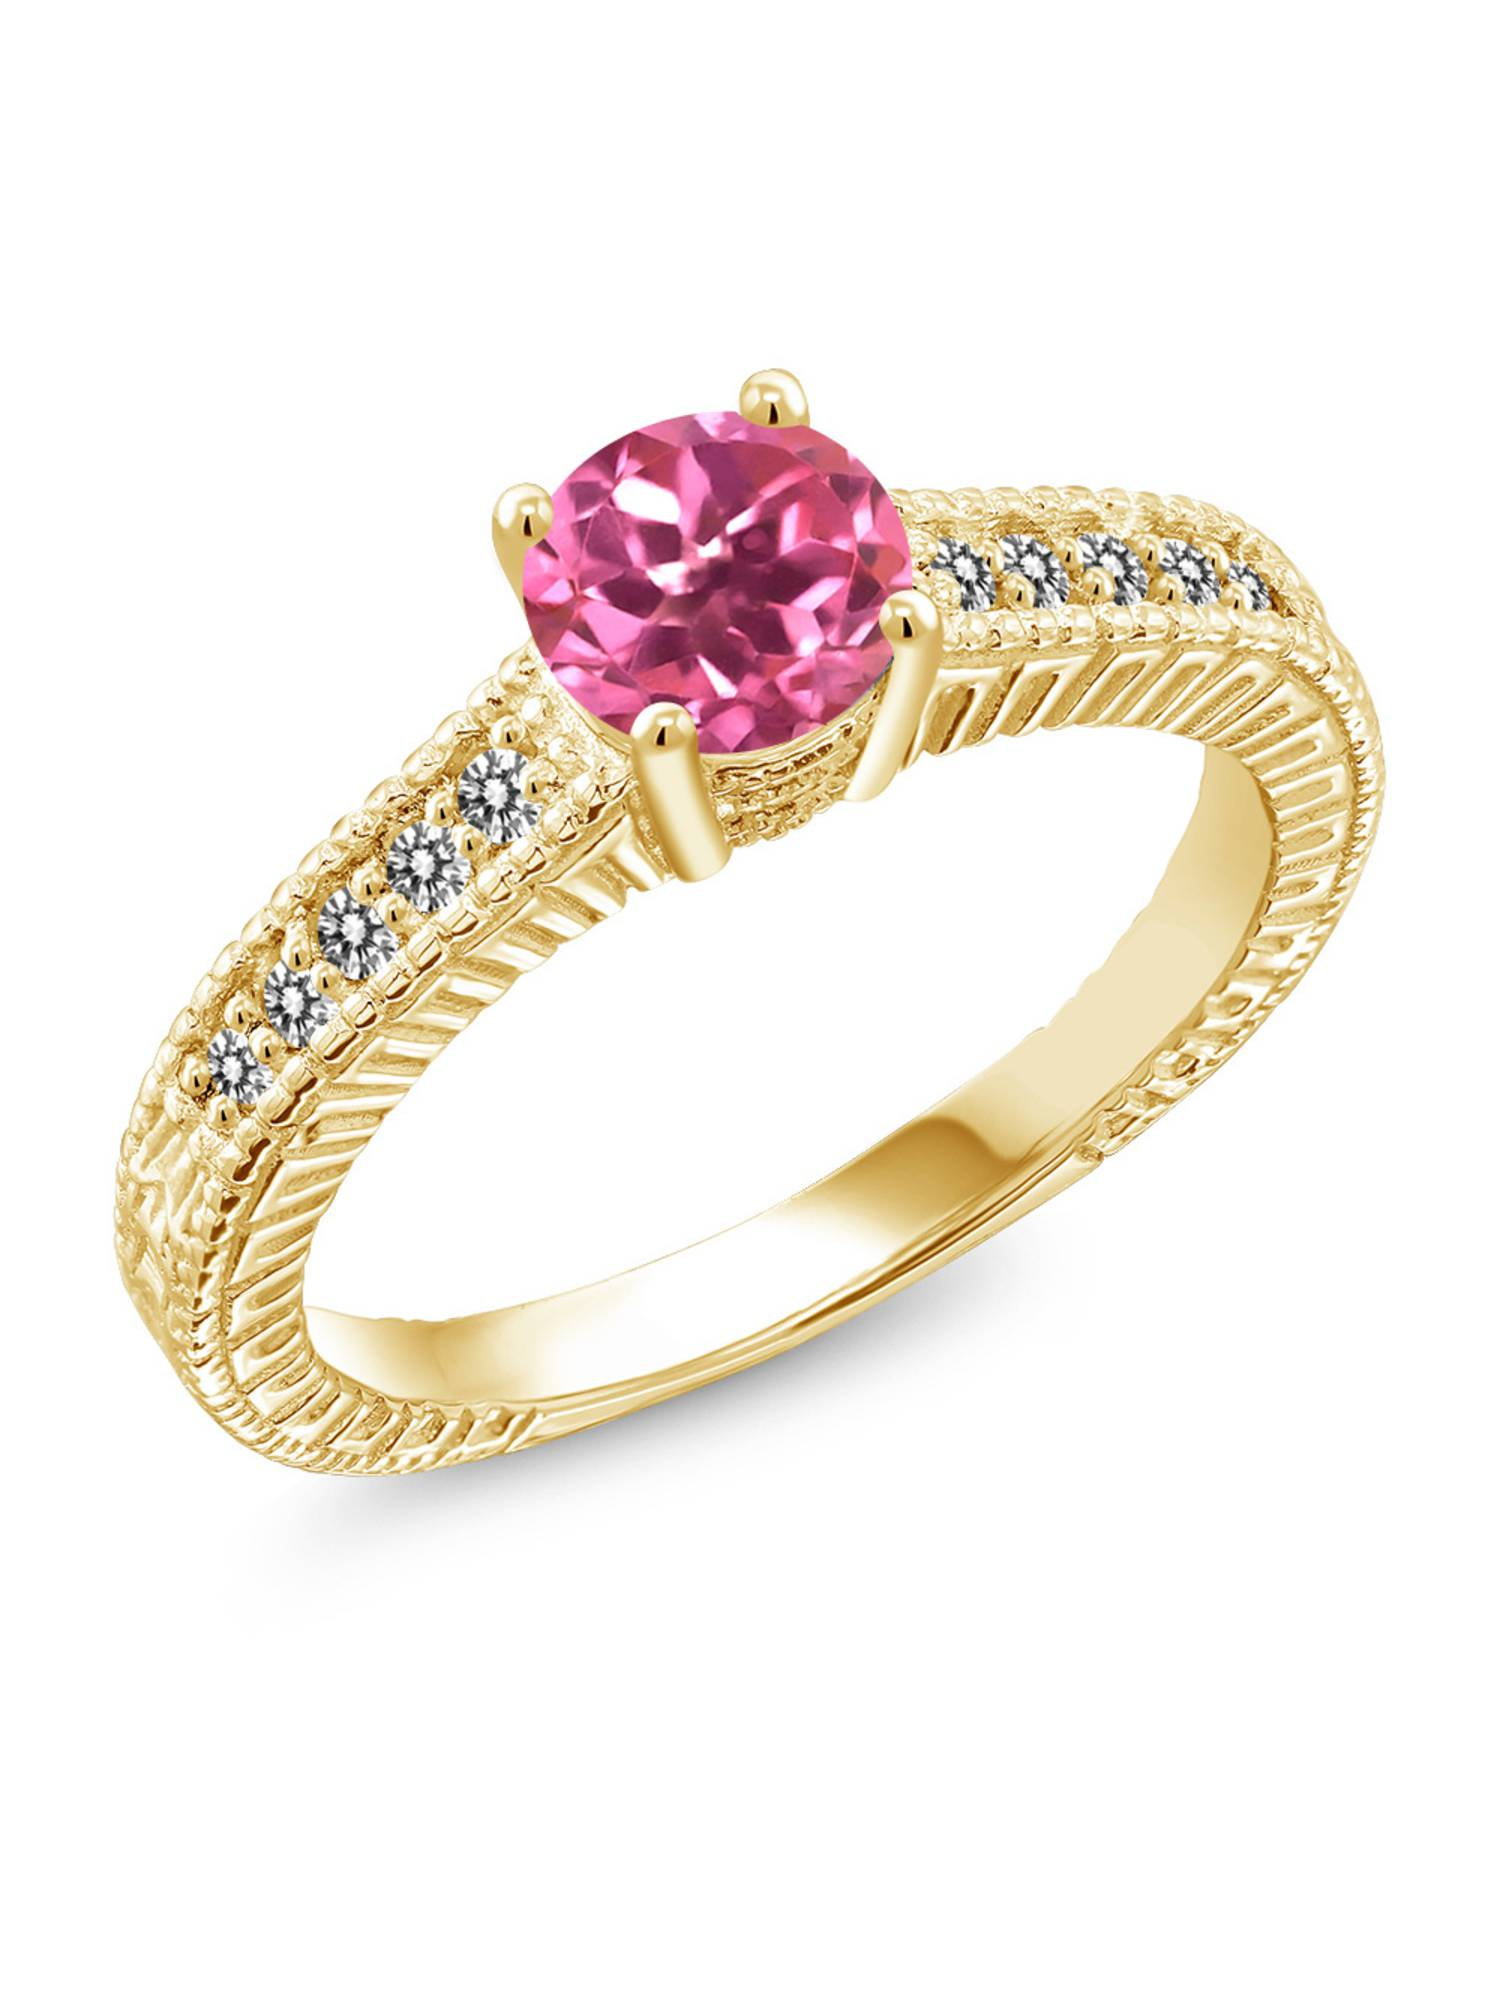 1.17 Ct Round Pink Mystic Topaz White Diamond 18K Yellow Gold Plated Silver Ring by